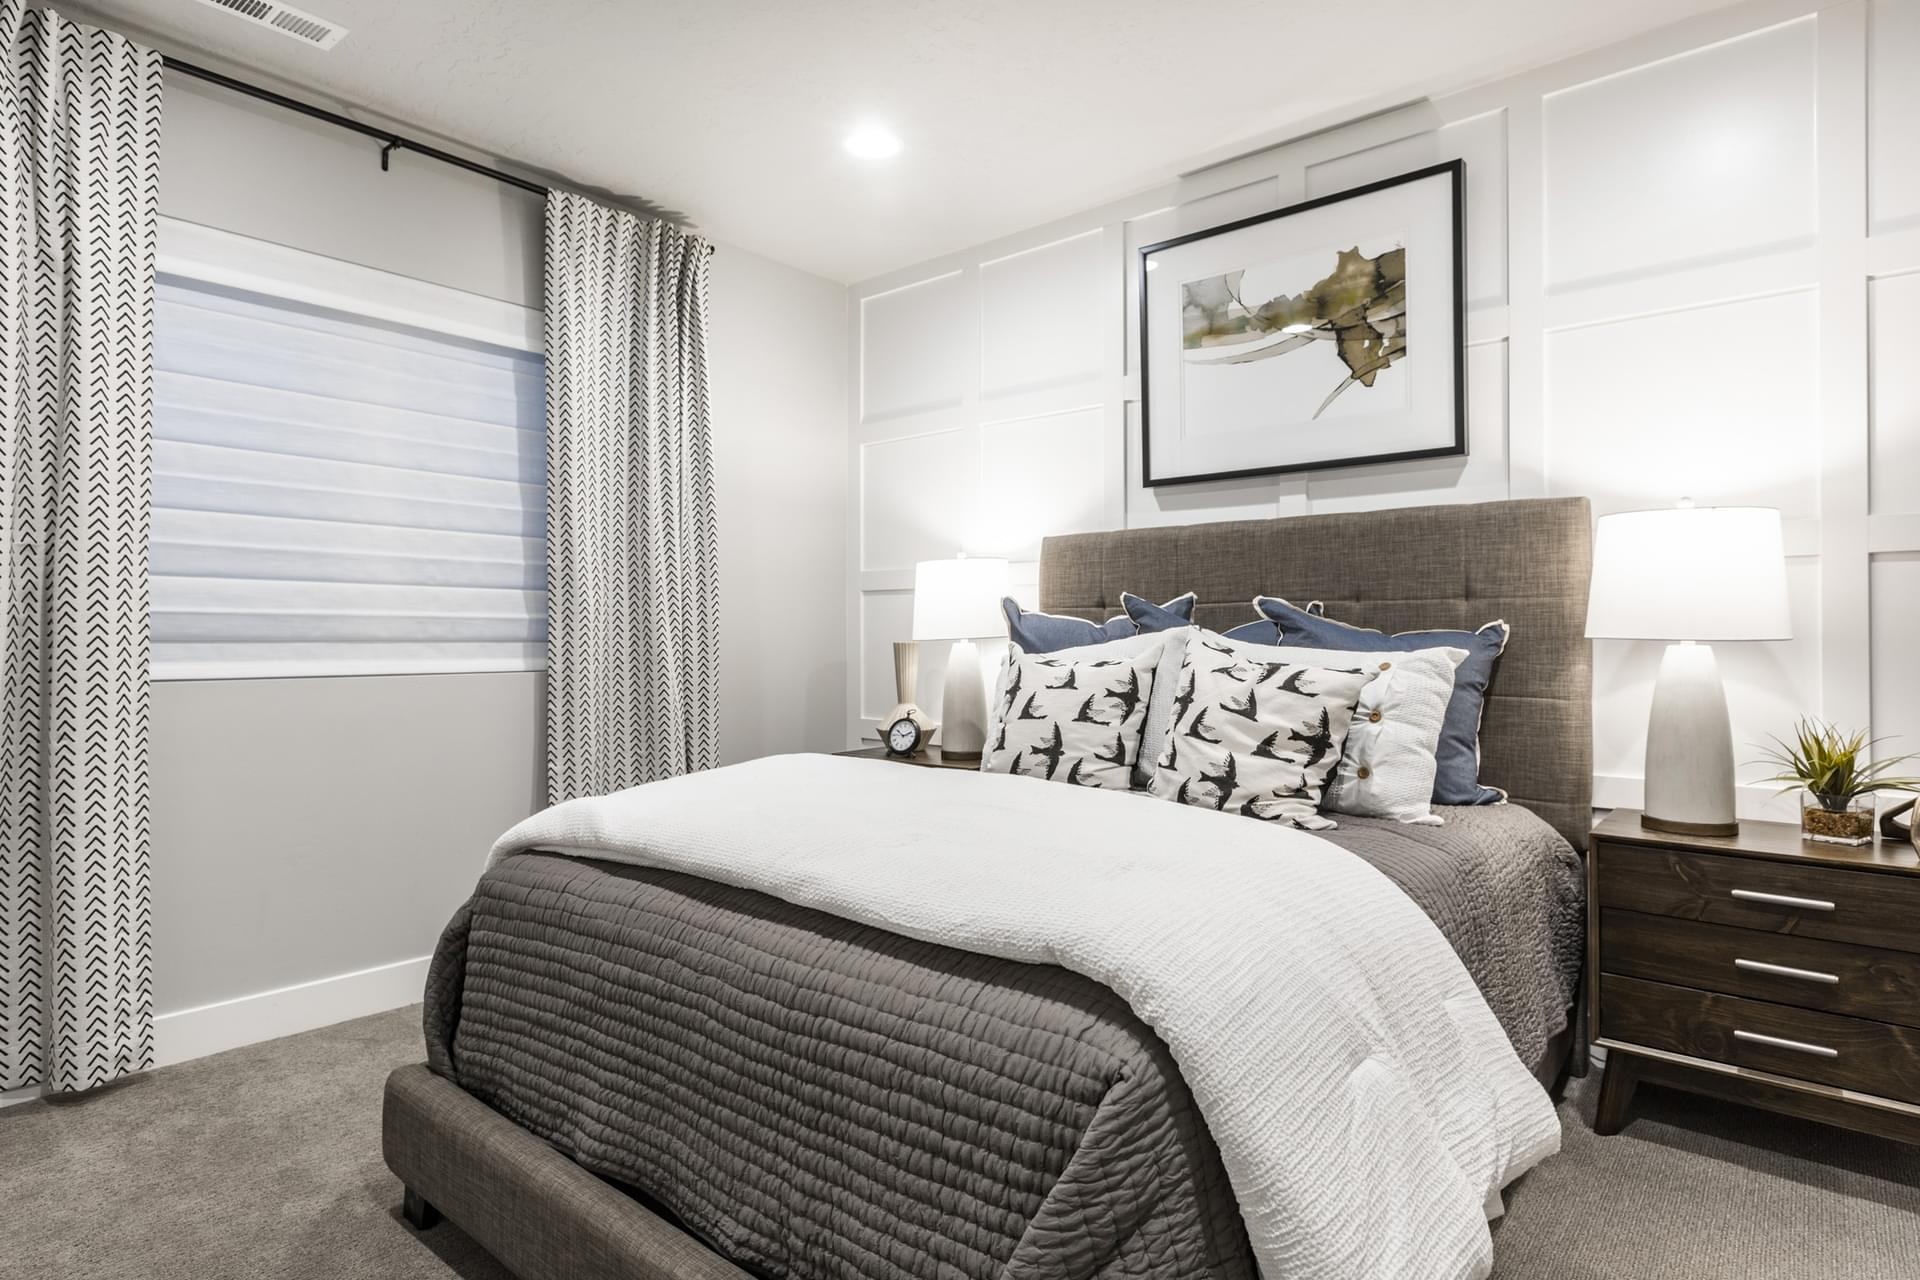 New Home Bedrooms Photos of Fieldstone Homes